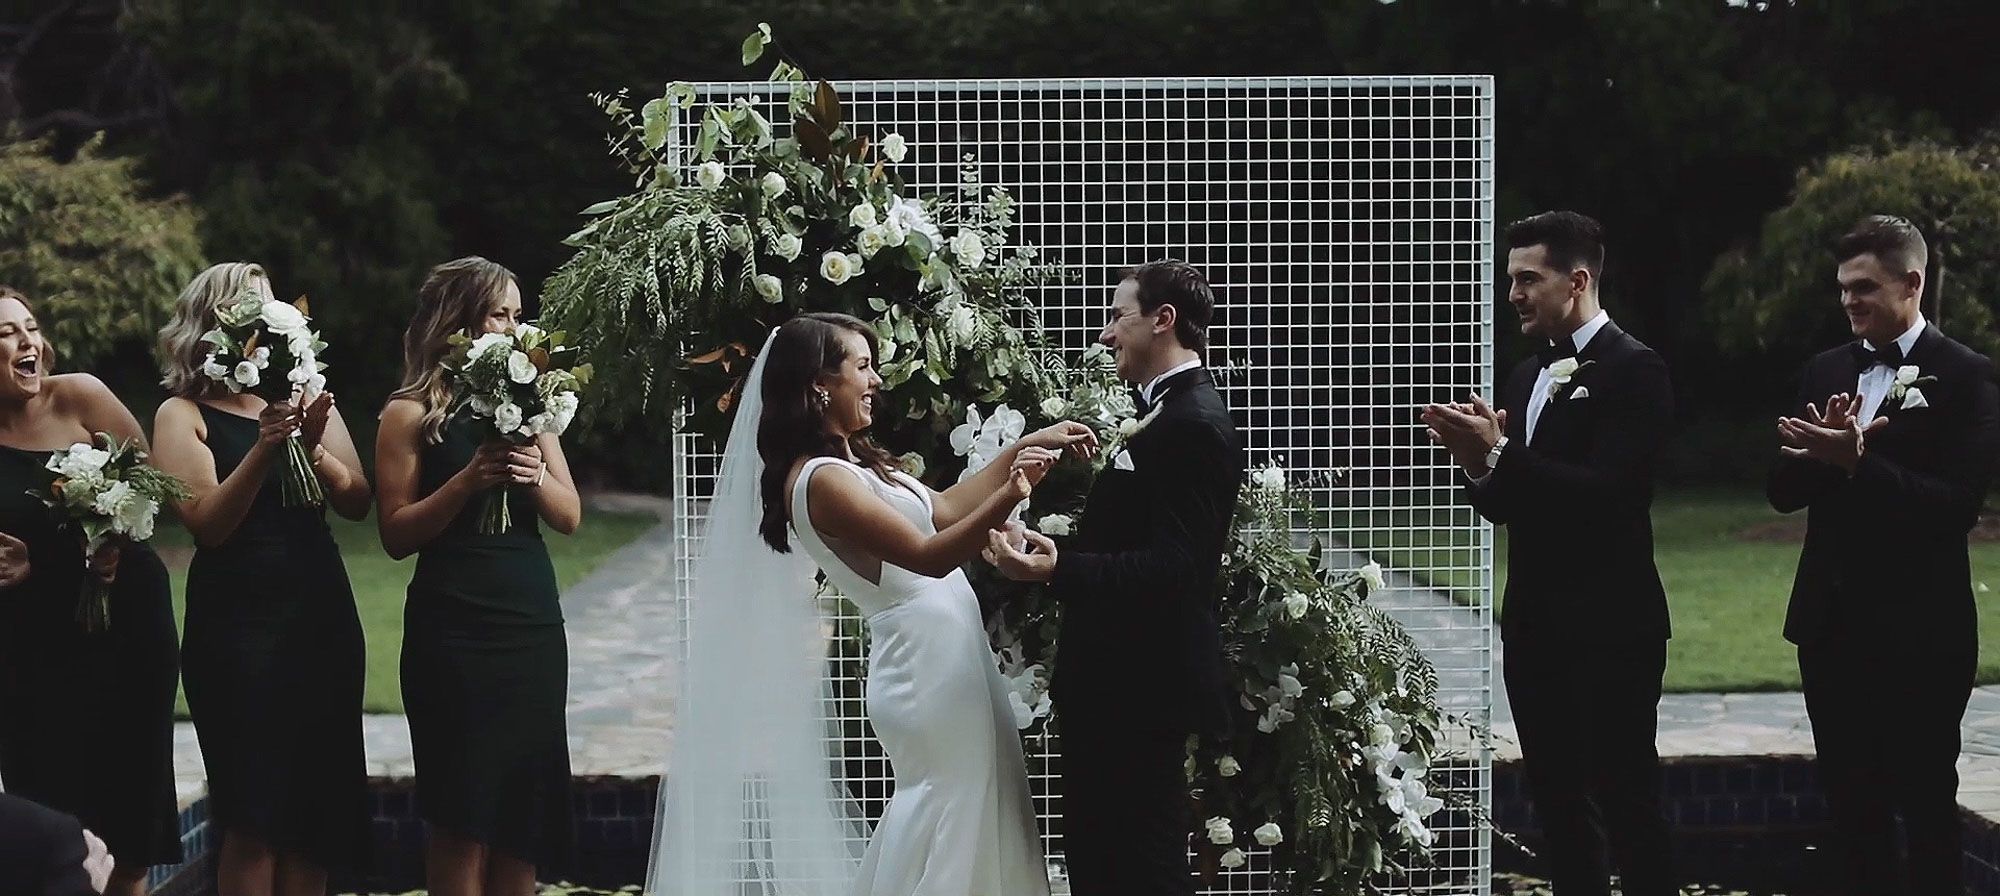 Annette and Dani Films - Burgess Video -  Melbourne Wedding Videoraphers  -Steph and Jesse_-2.jpg